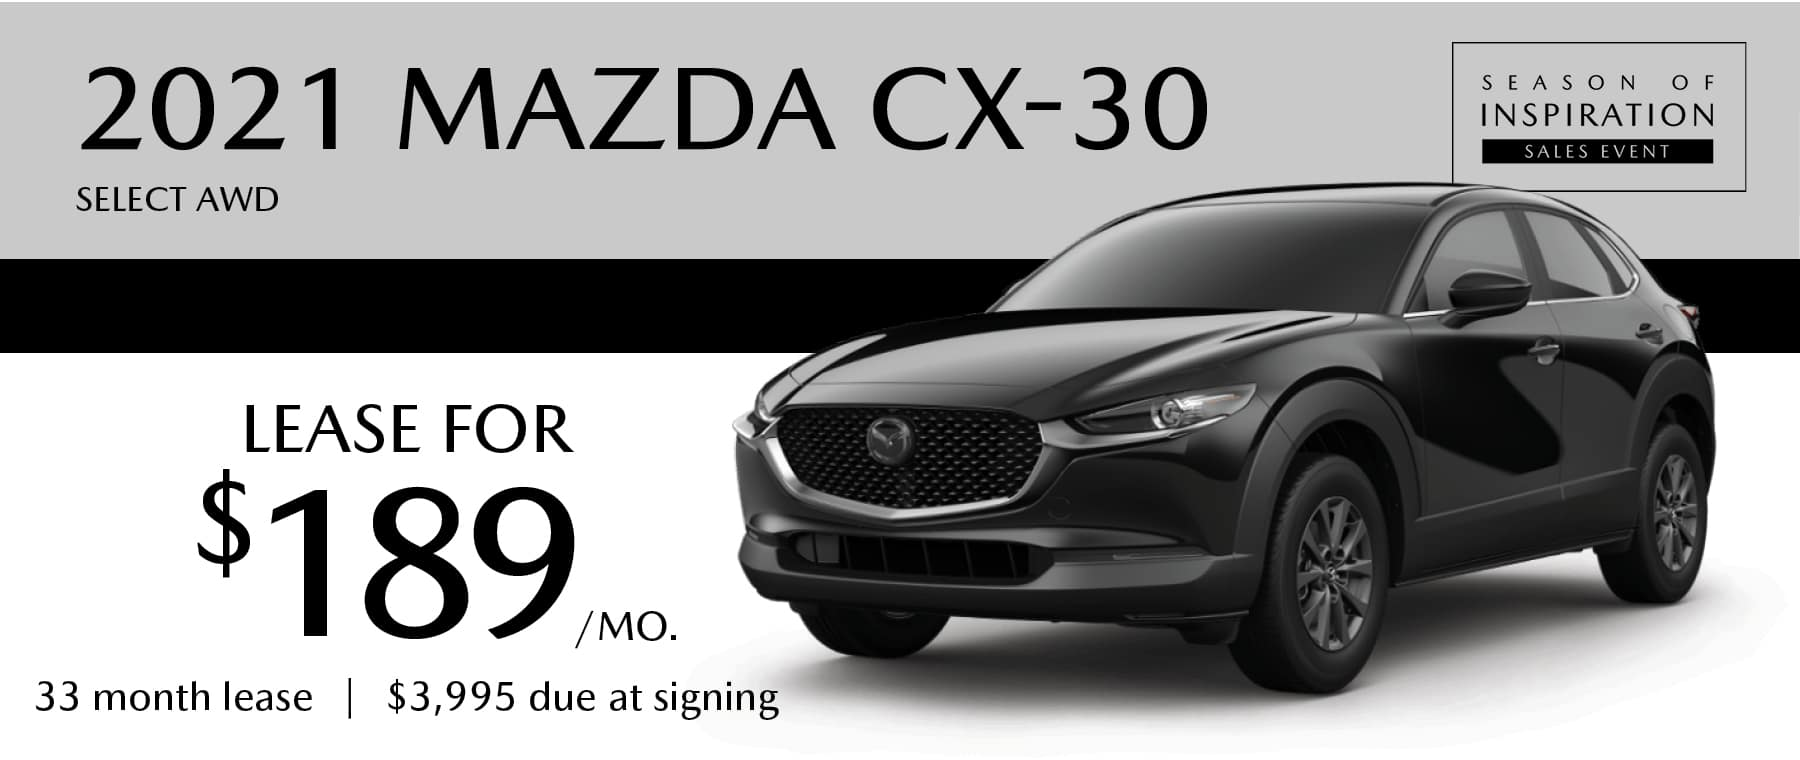 2021 MAZDA CX-30 Select AWD Lease Offer